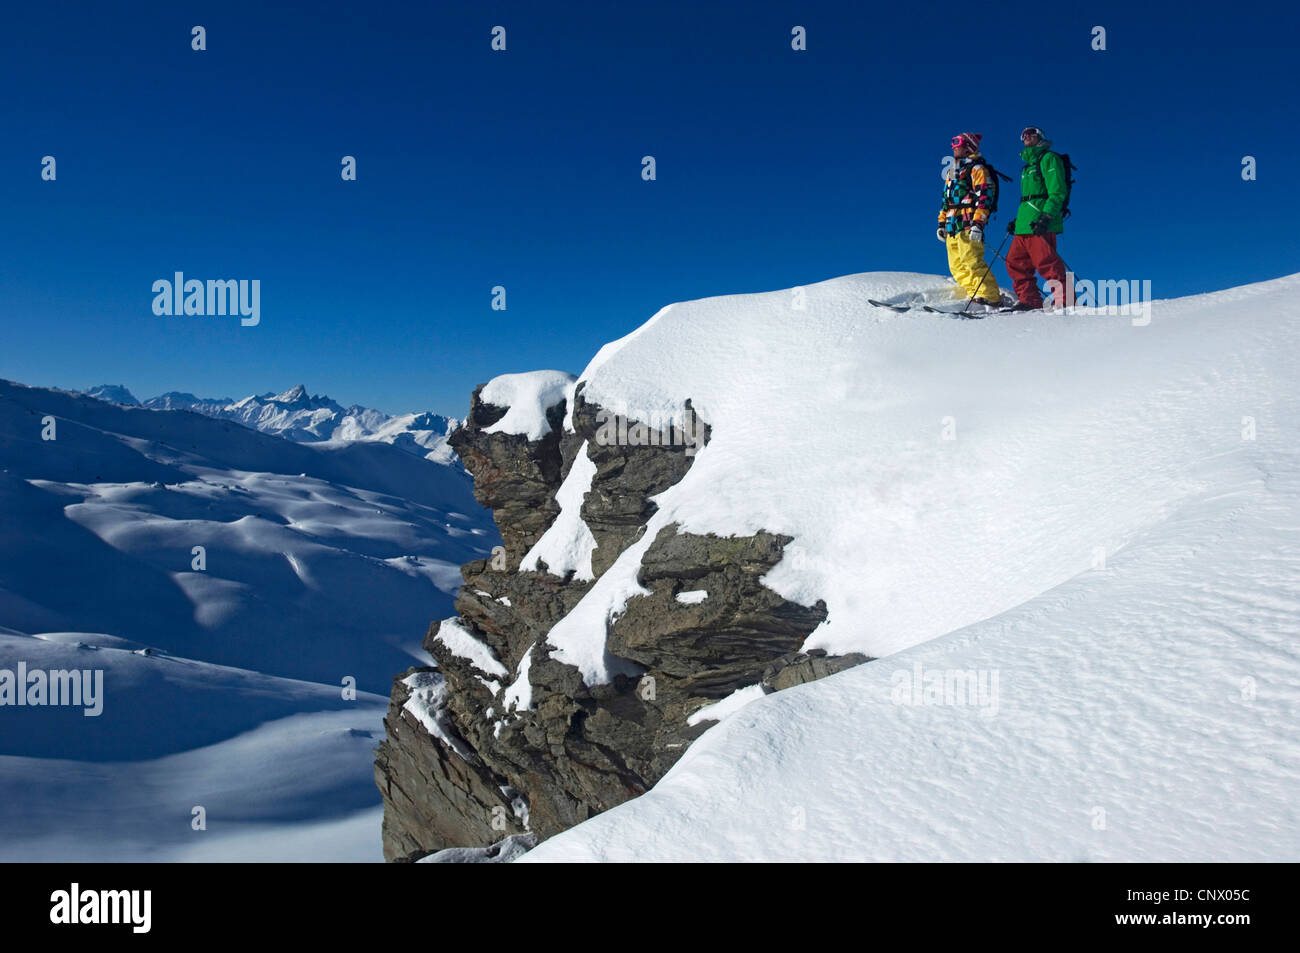 ski resort of Les M�nuires, north Alps mountain, France - Stock Image